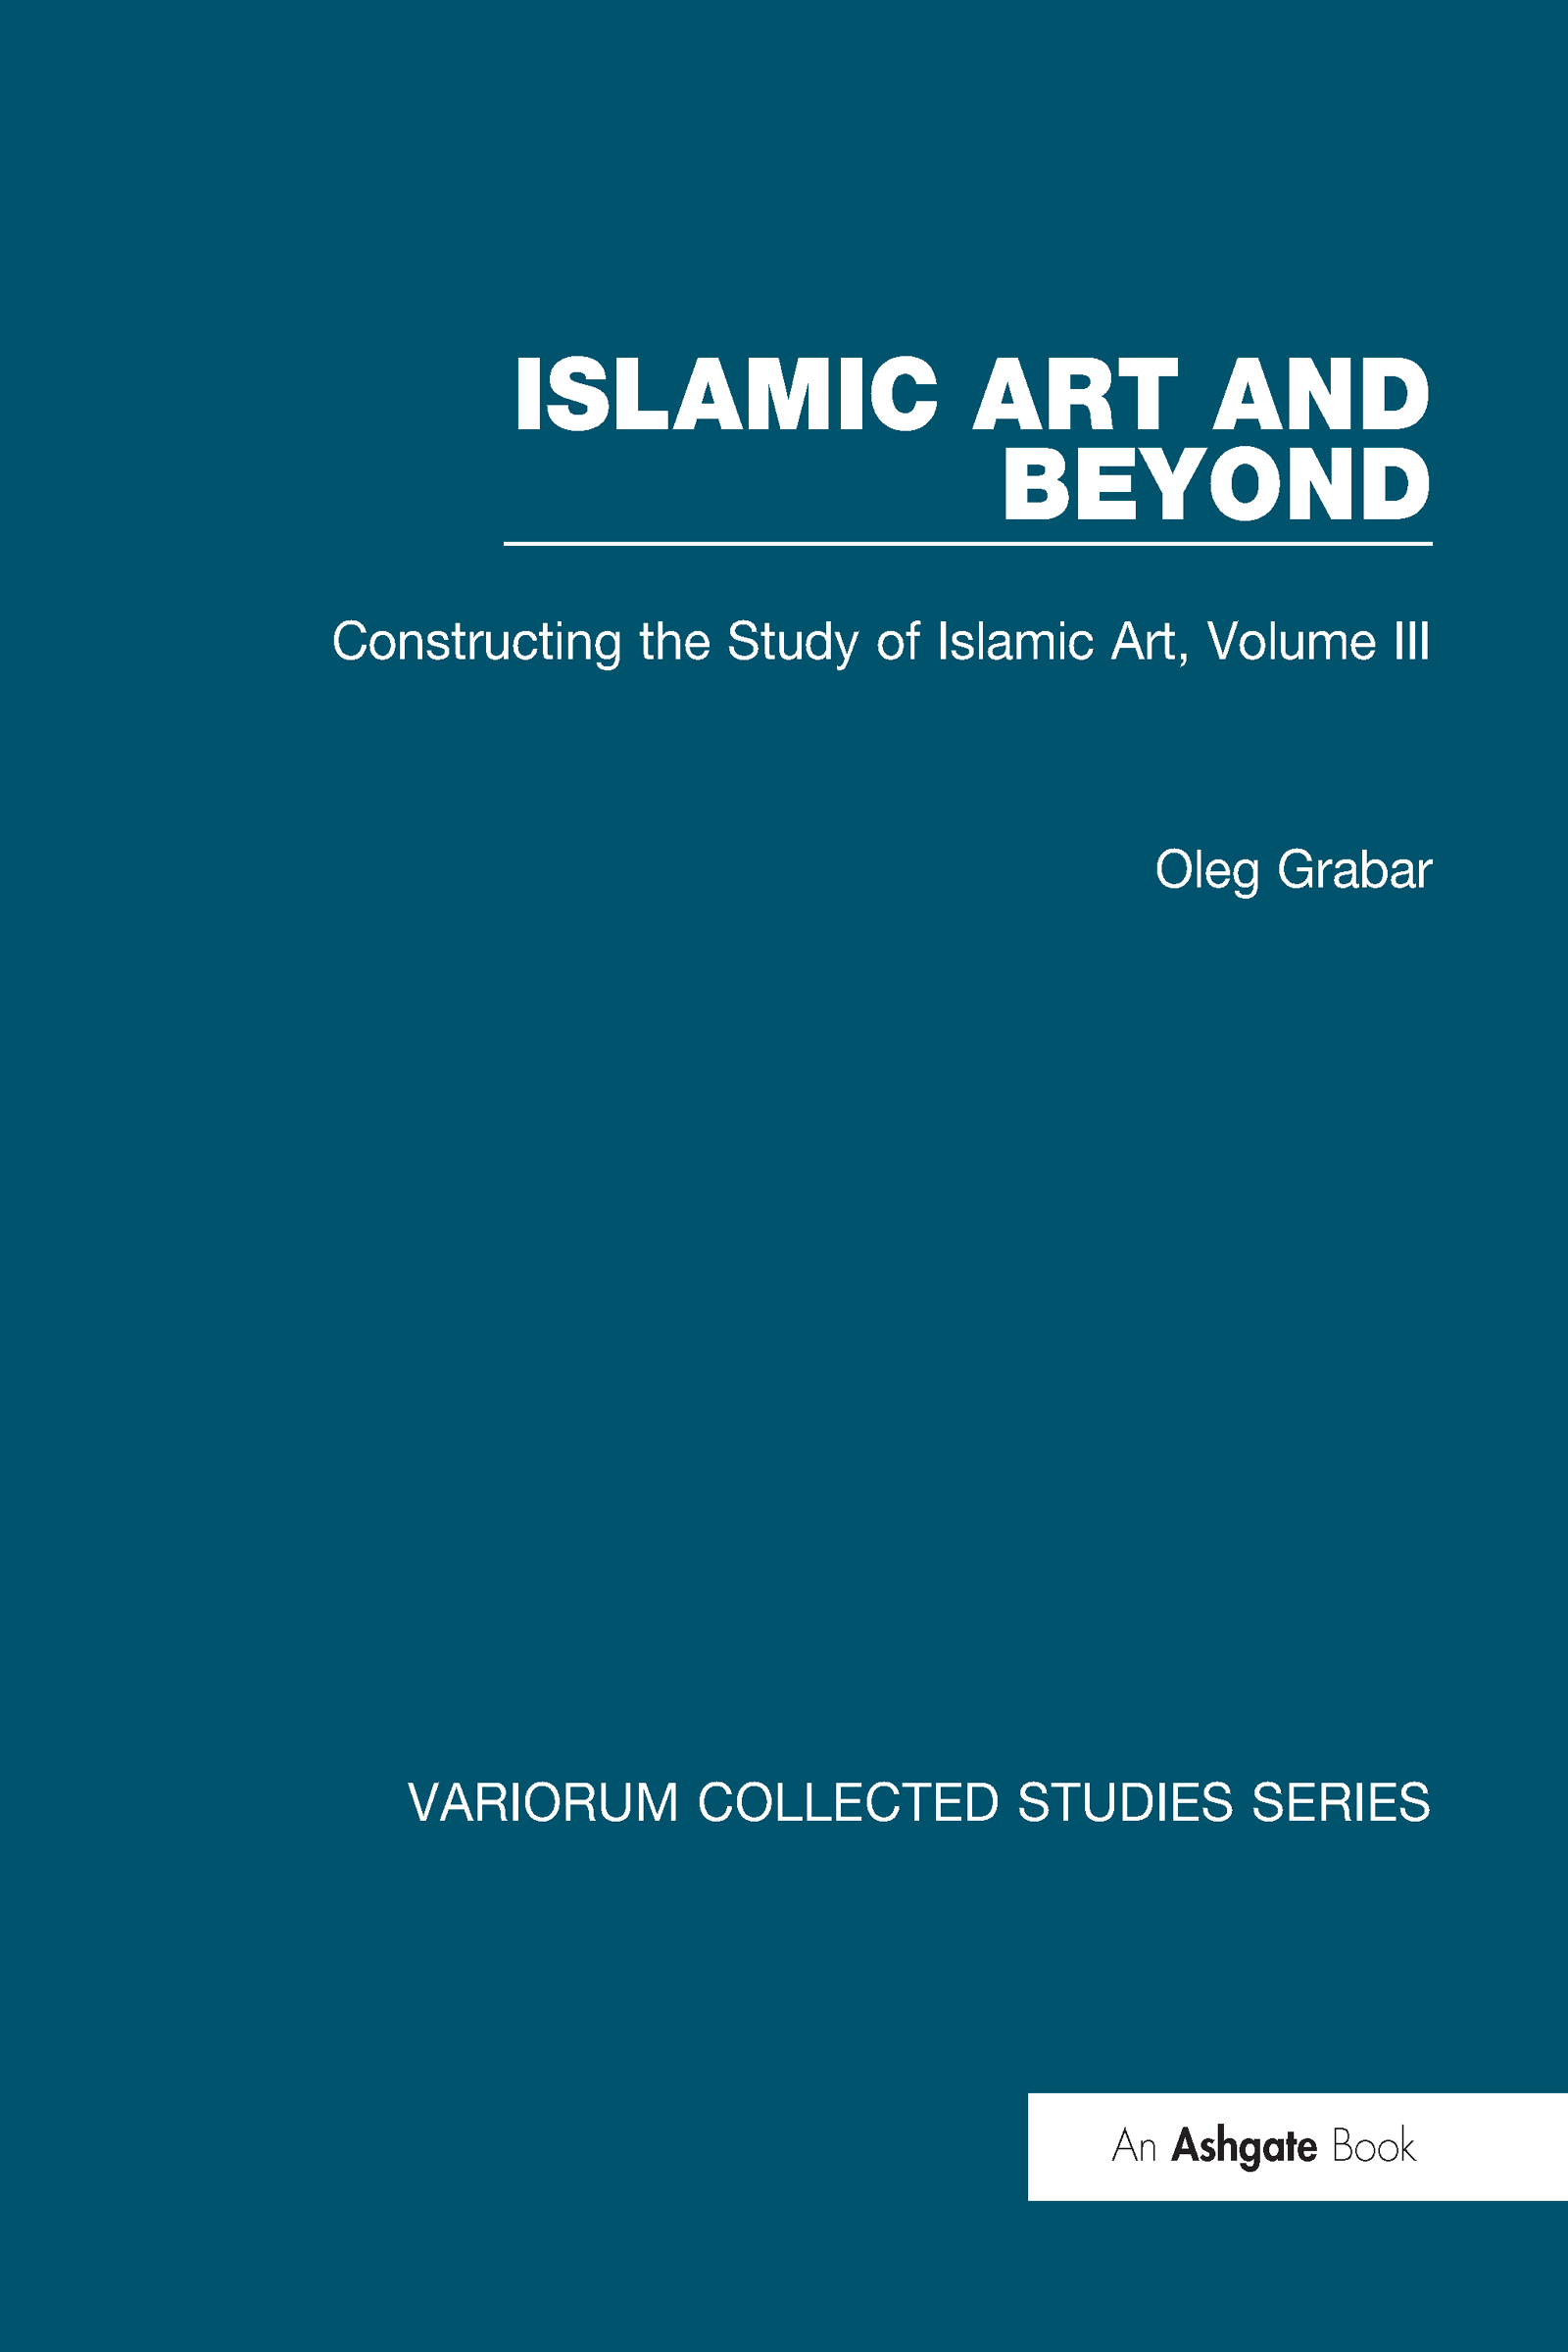 Islamic Art and Beyond: Constructing the Study of Islamic Art, Volume III book cover